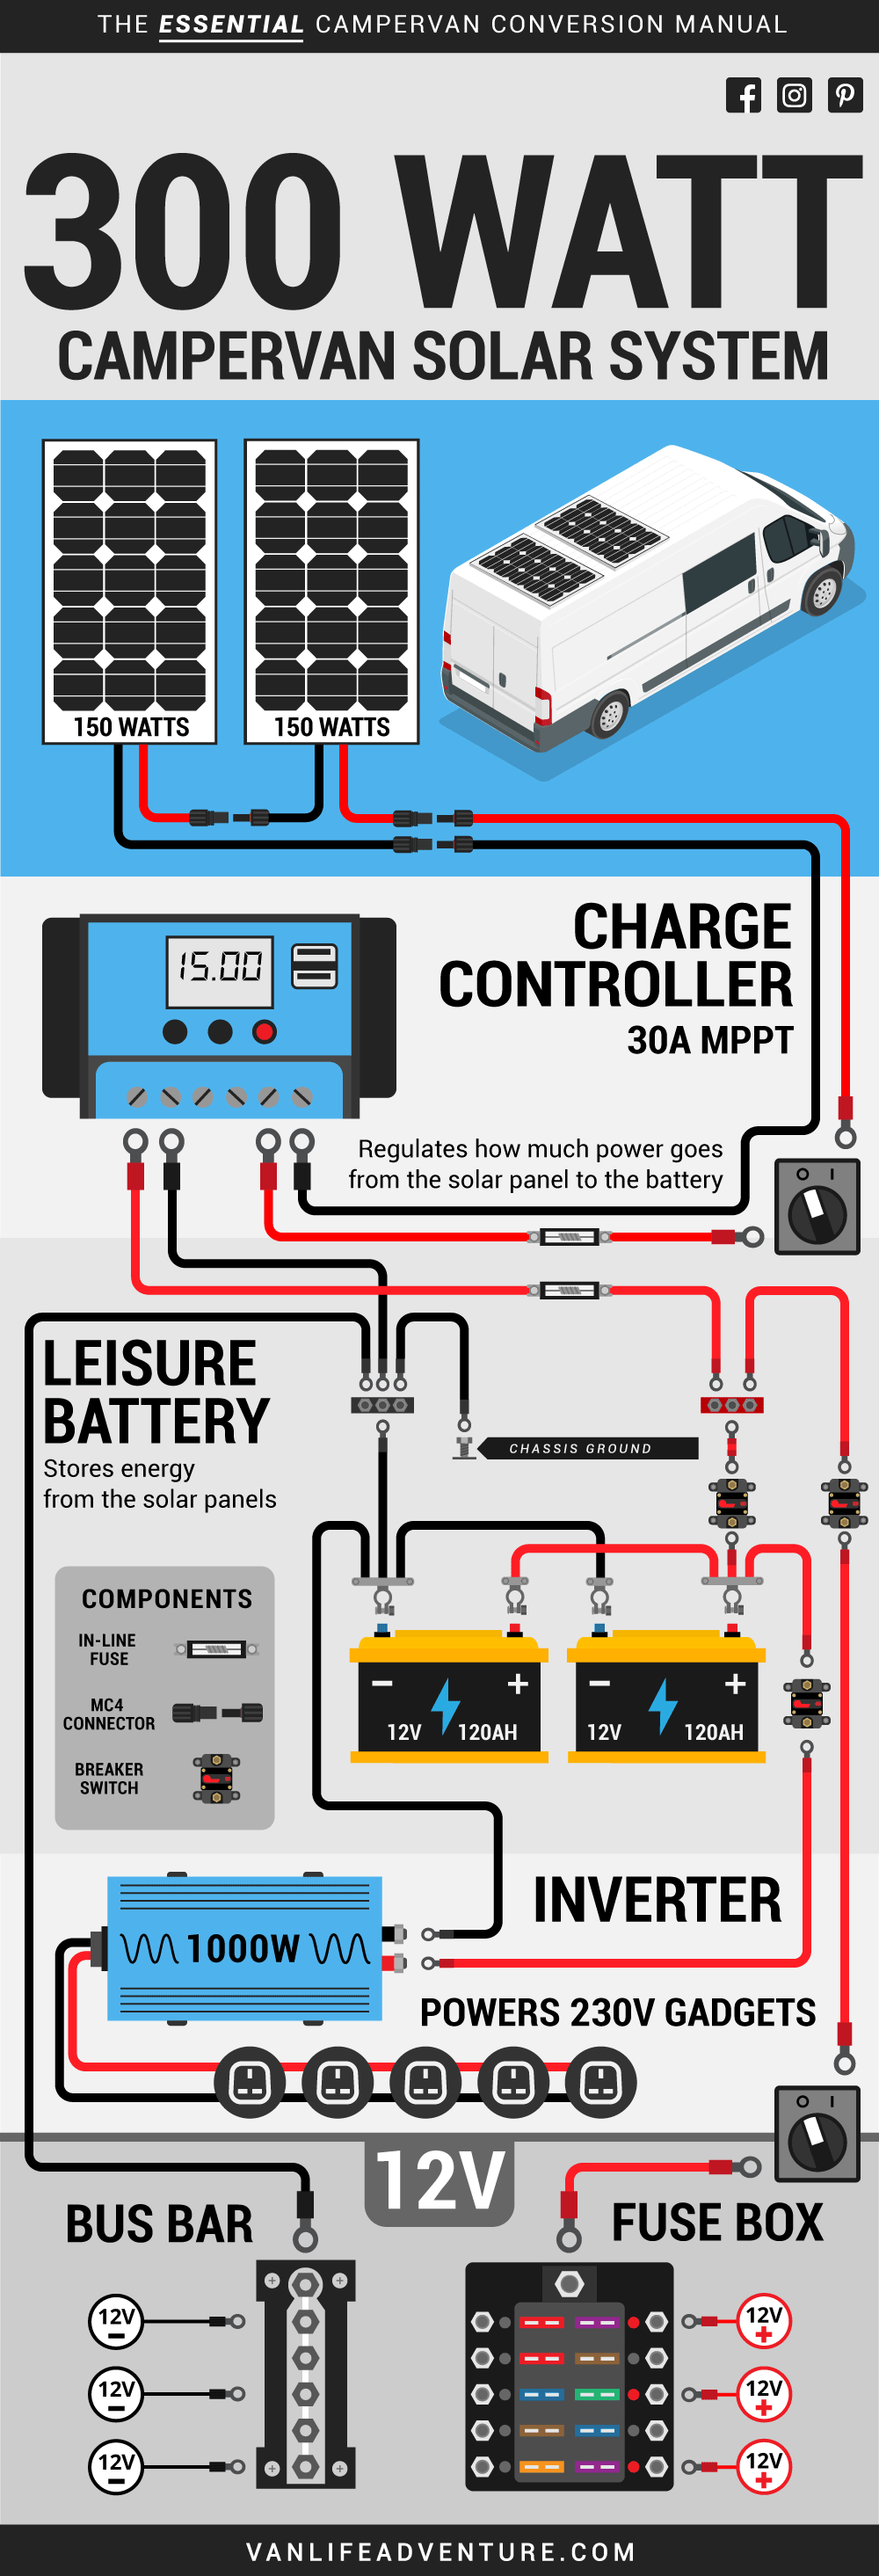 campervan solar power an illustrated guide  vanlife adventure